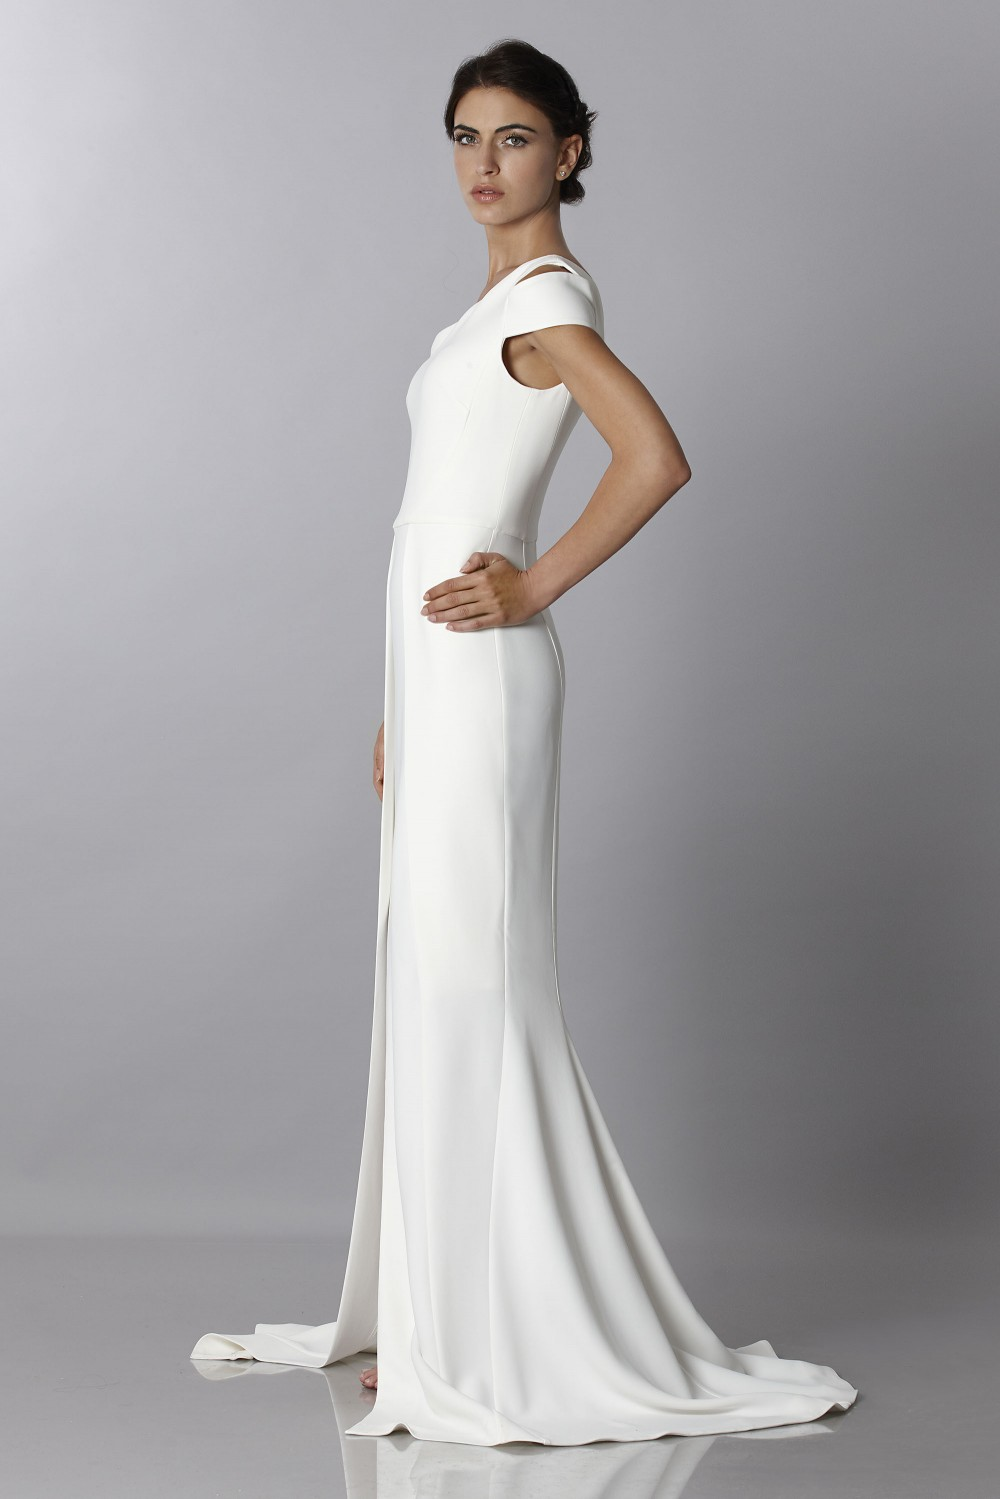 Rent a antonio berardi dress wedding dress for Renting a wedding dress